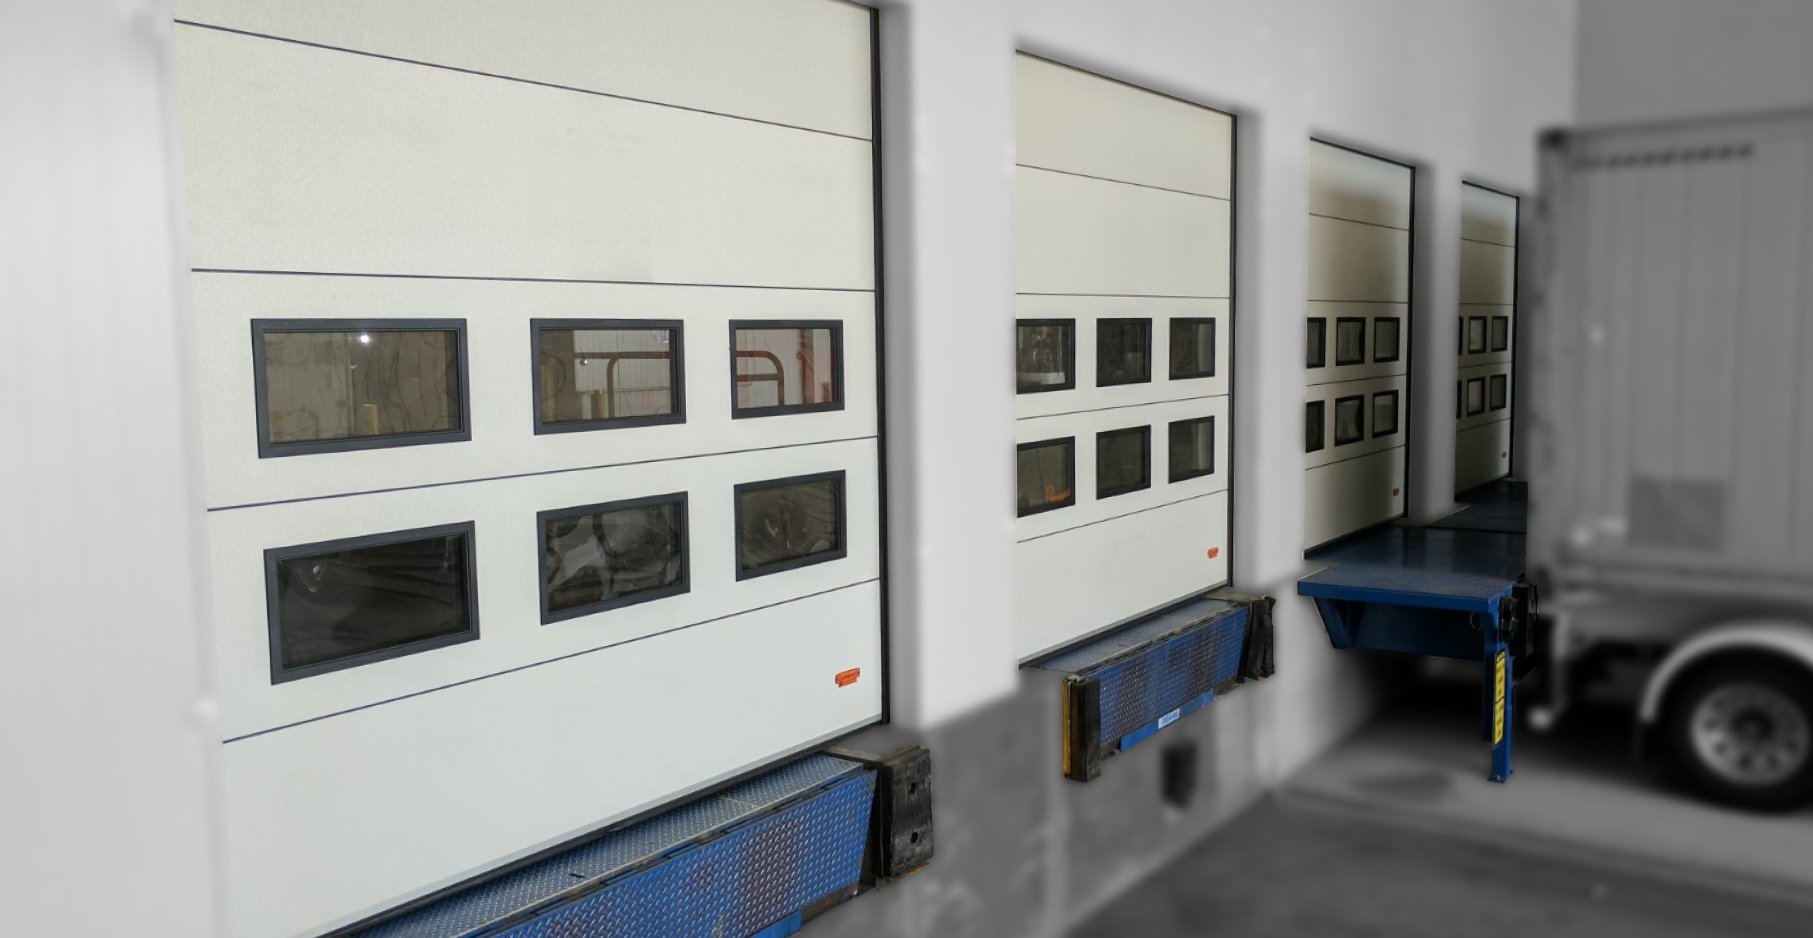 Insulated sectional loading dock doors which fold